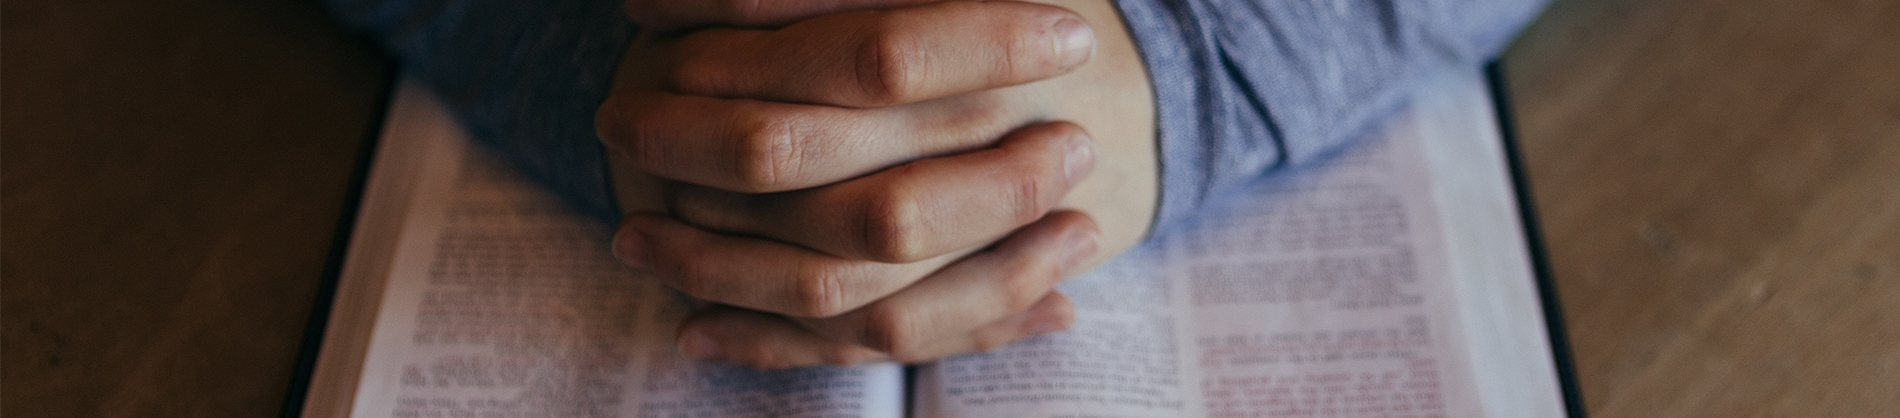 Praying hands on top of a bible